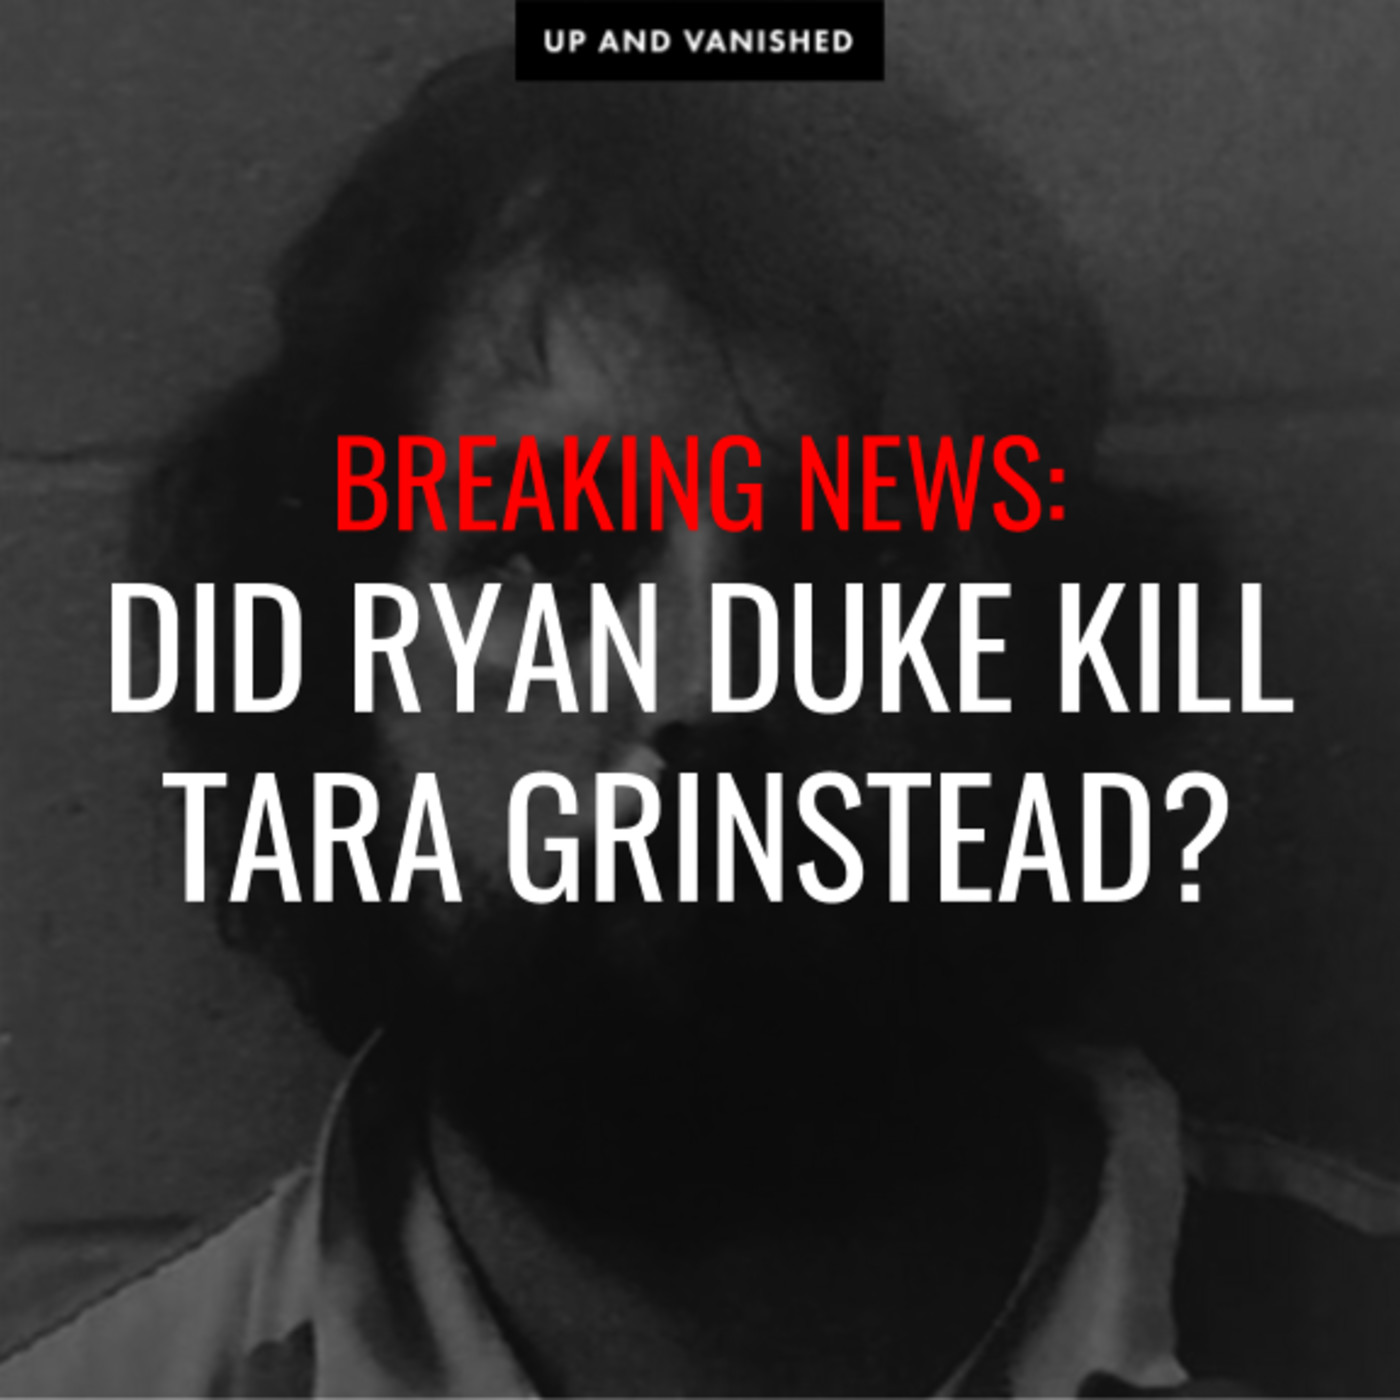 S1E : Did Ryan Duke kill Tara Grinstead?